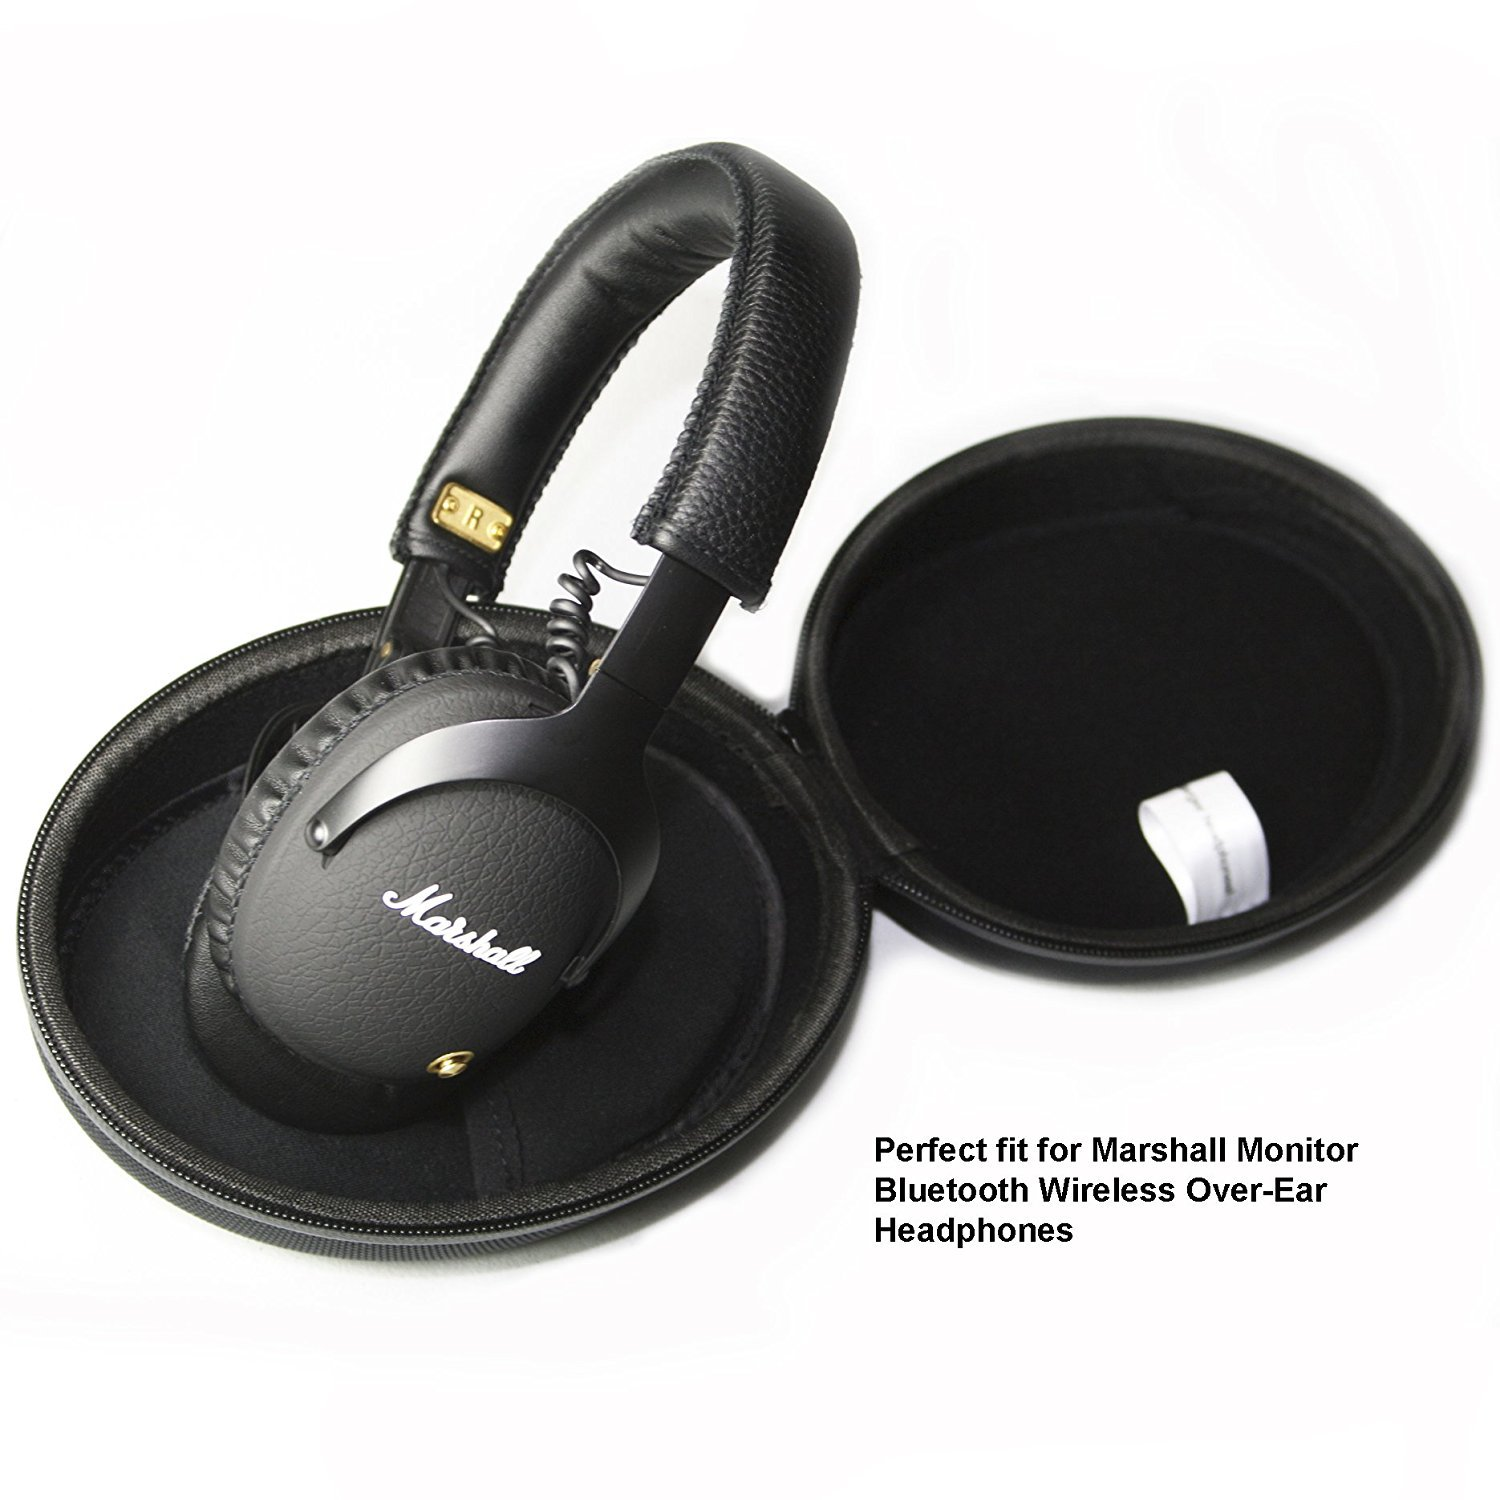 Carcasa rígida de protección para Marshall Monitor Bluetooth Over-Ear auriculares y Marshall Major II auriculares de diadema Bluetooth: Amazon.es: ...